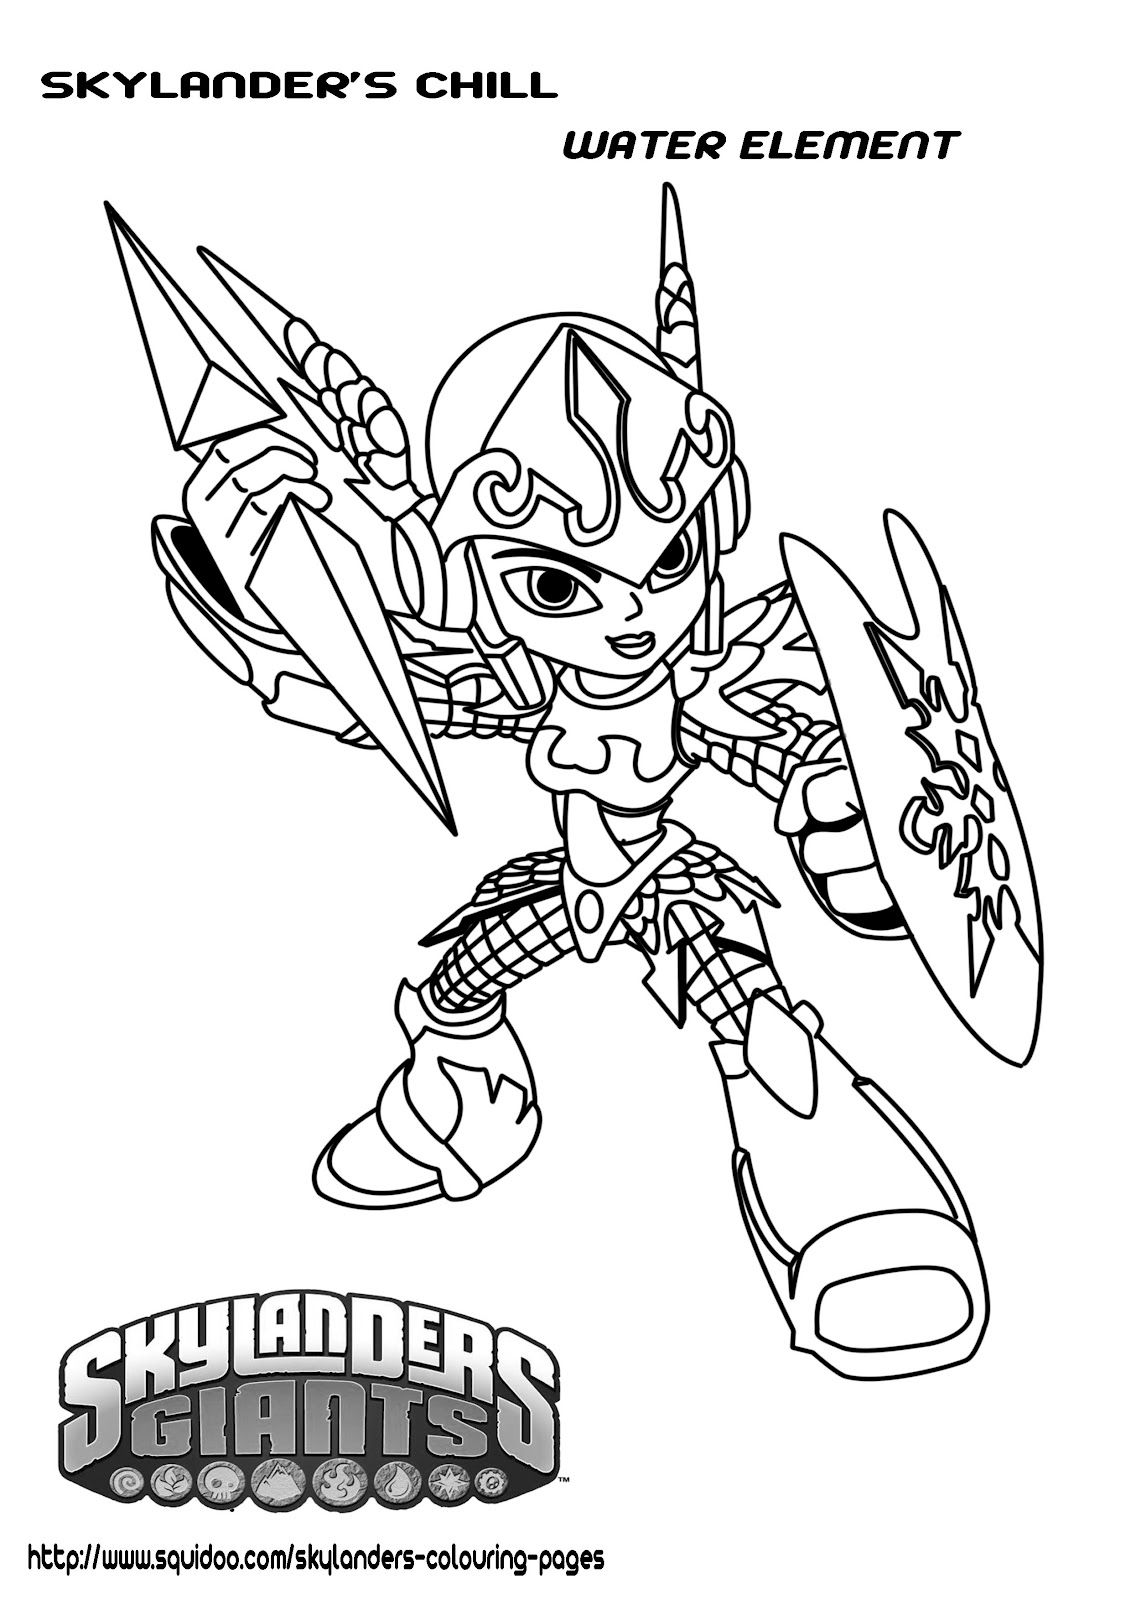 Printable Skylanders Coloring Pages | Skylanders, Birthdays and Easter